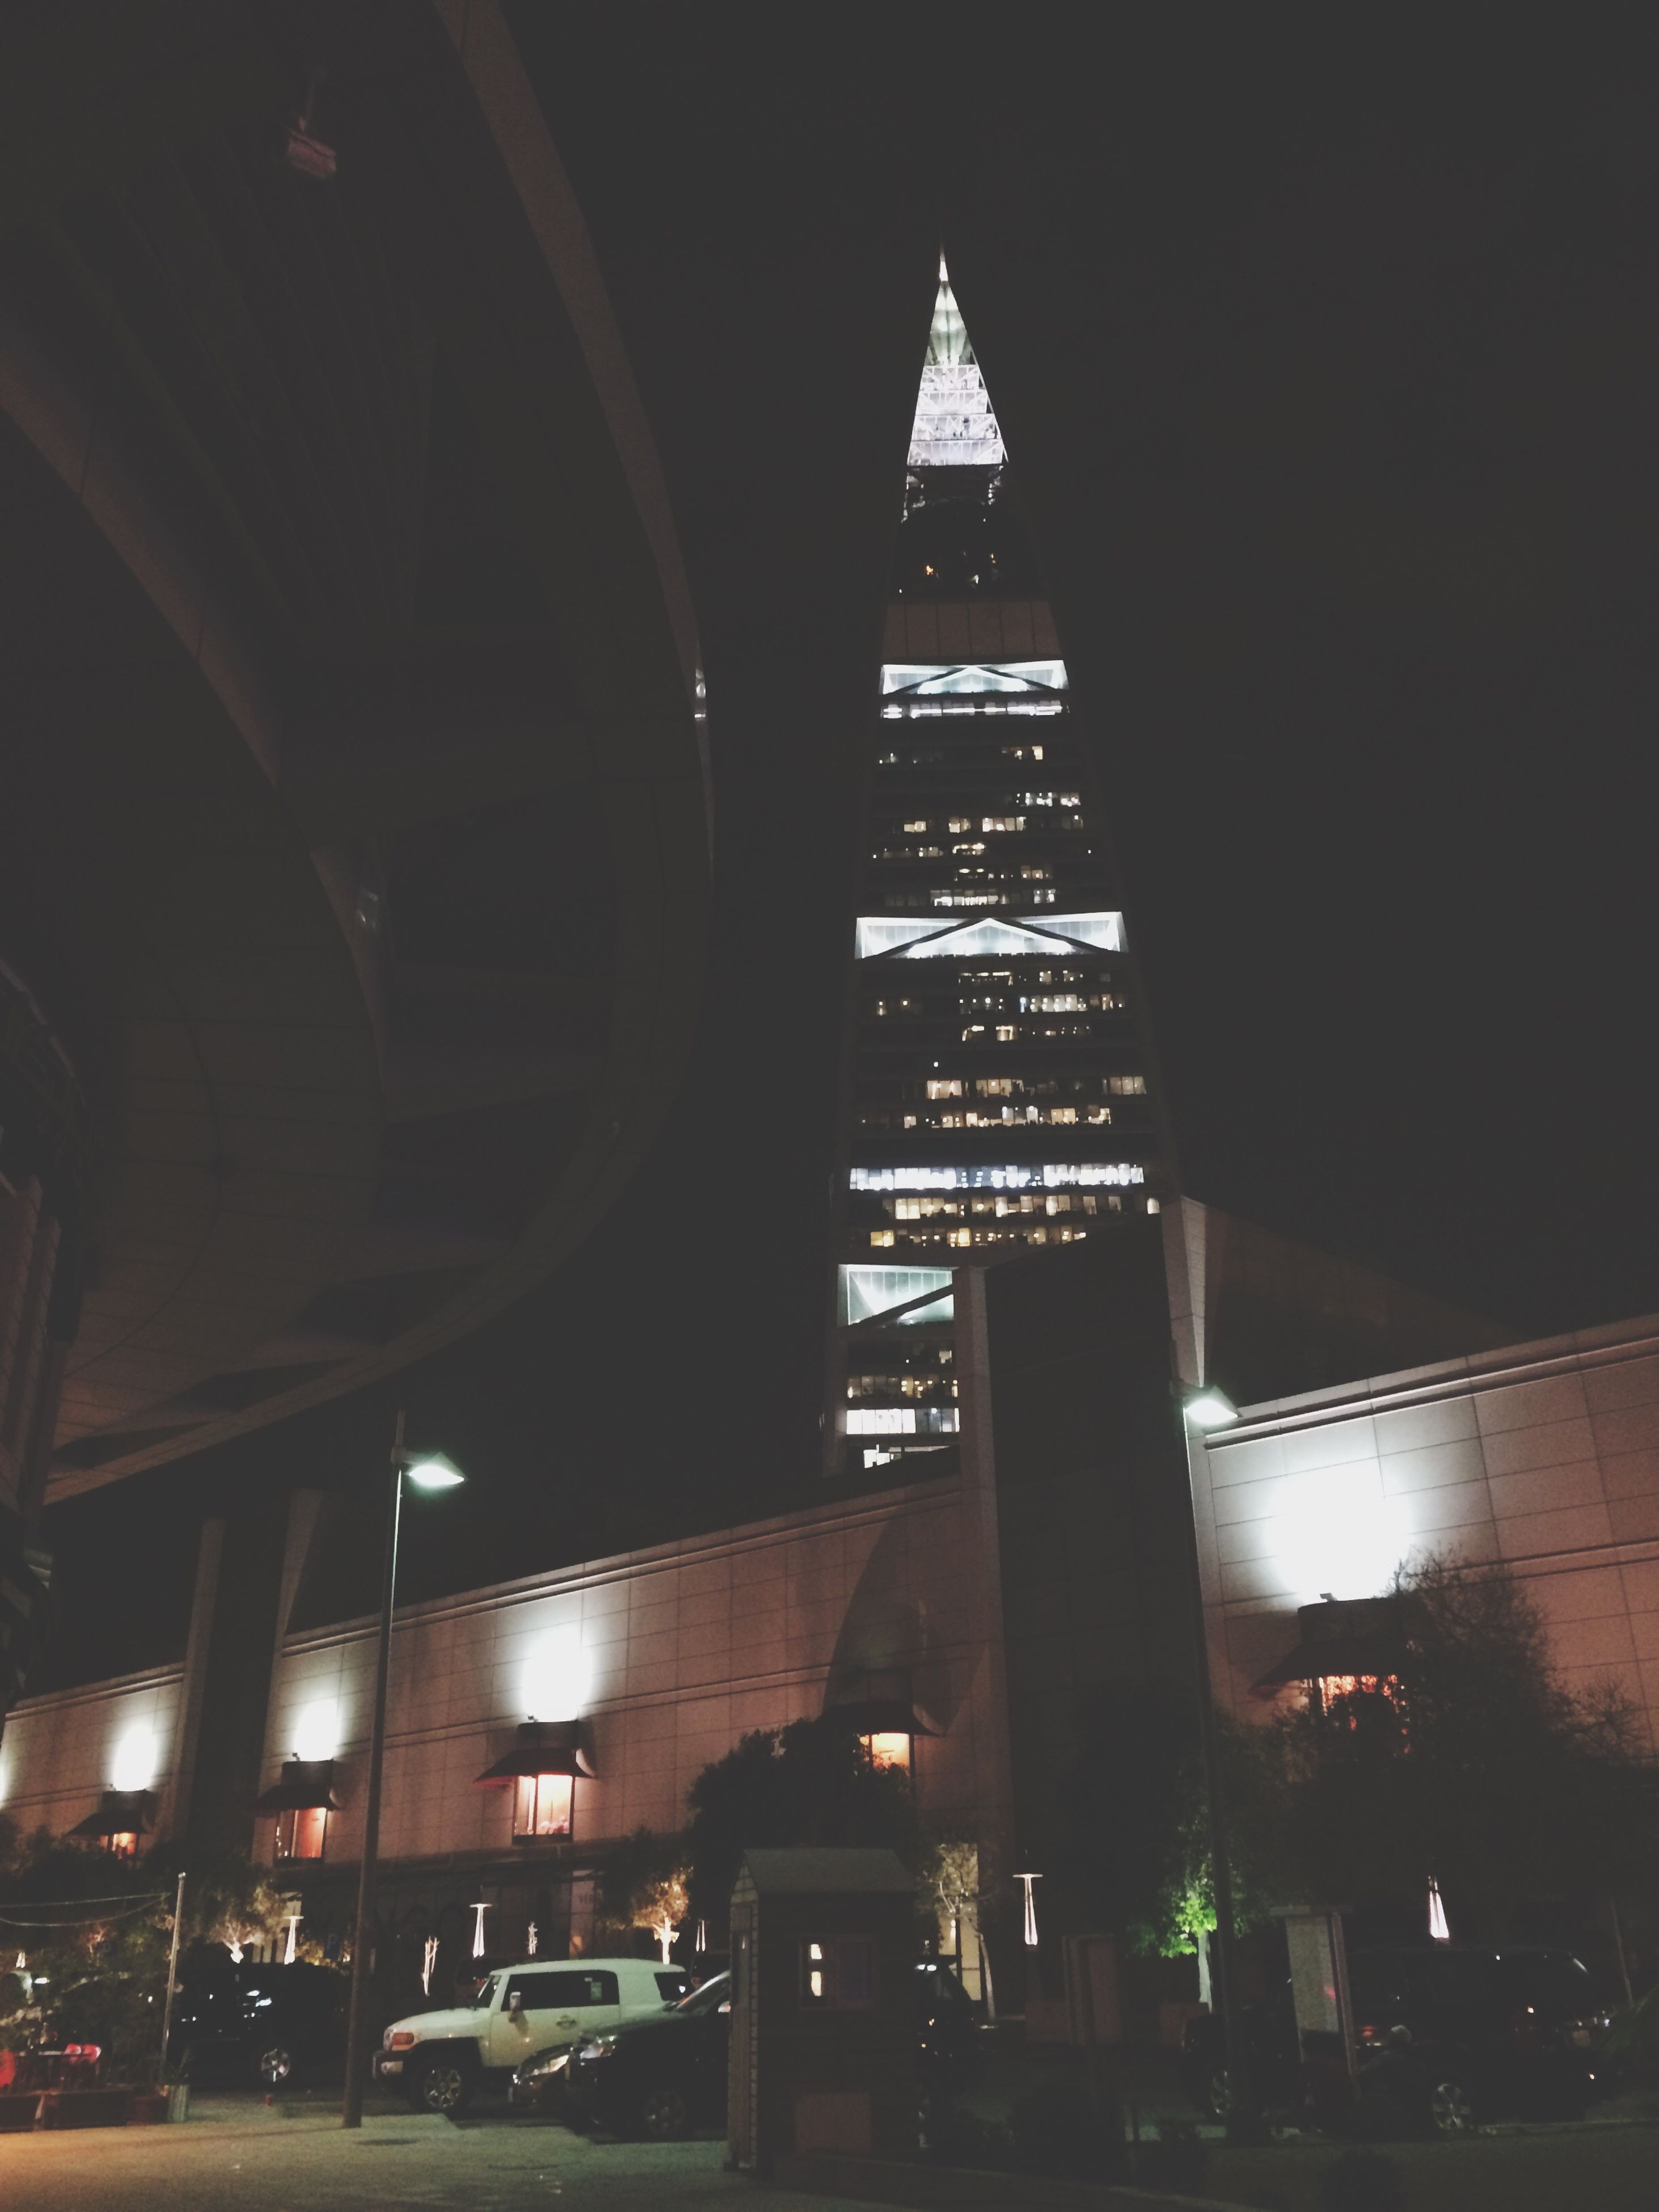 architecture, built structure, building exterior, illuminated, night, city, transportation, street, car, low angle view, land vehicle, mode of transport, dark, skyscraper, tall - high, outdoors, city life, tall, sky, office building, diminishing perspective, the way forward, no people, spire, modern